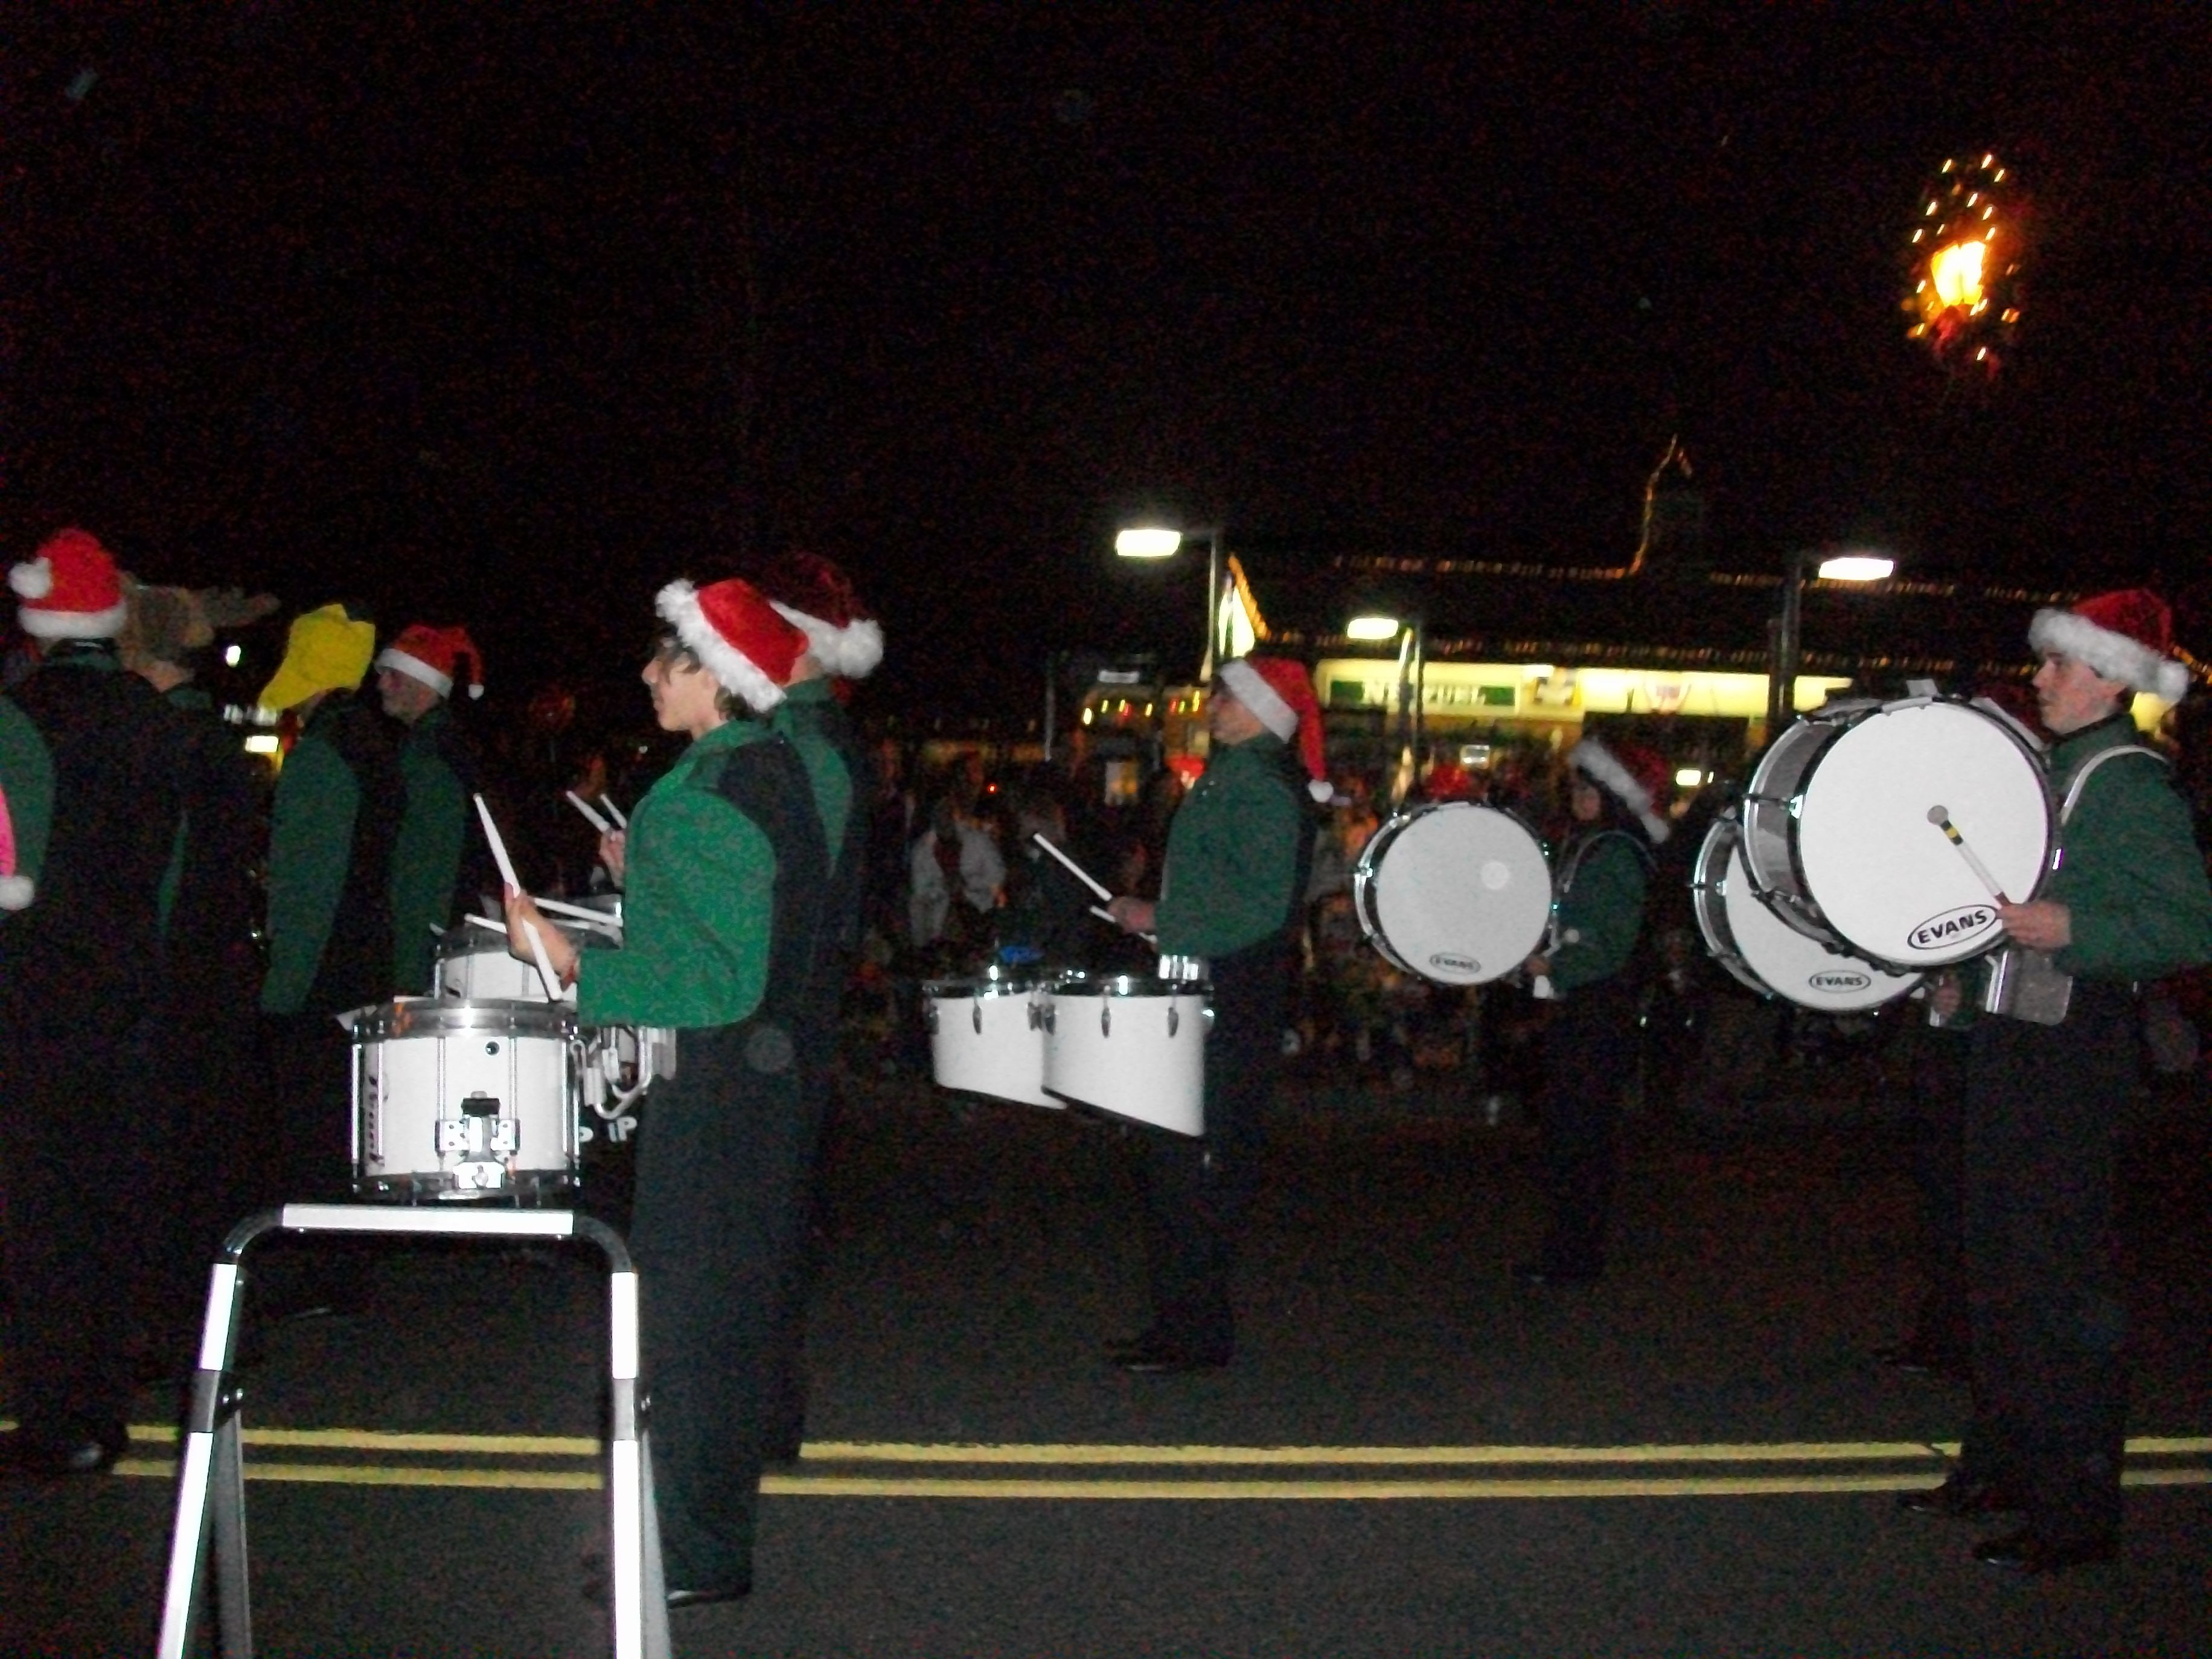 66ee569db87f465b59ea_nphs_pioneer_marching_band_welcomes_santa.jpg